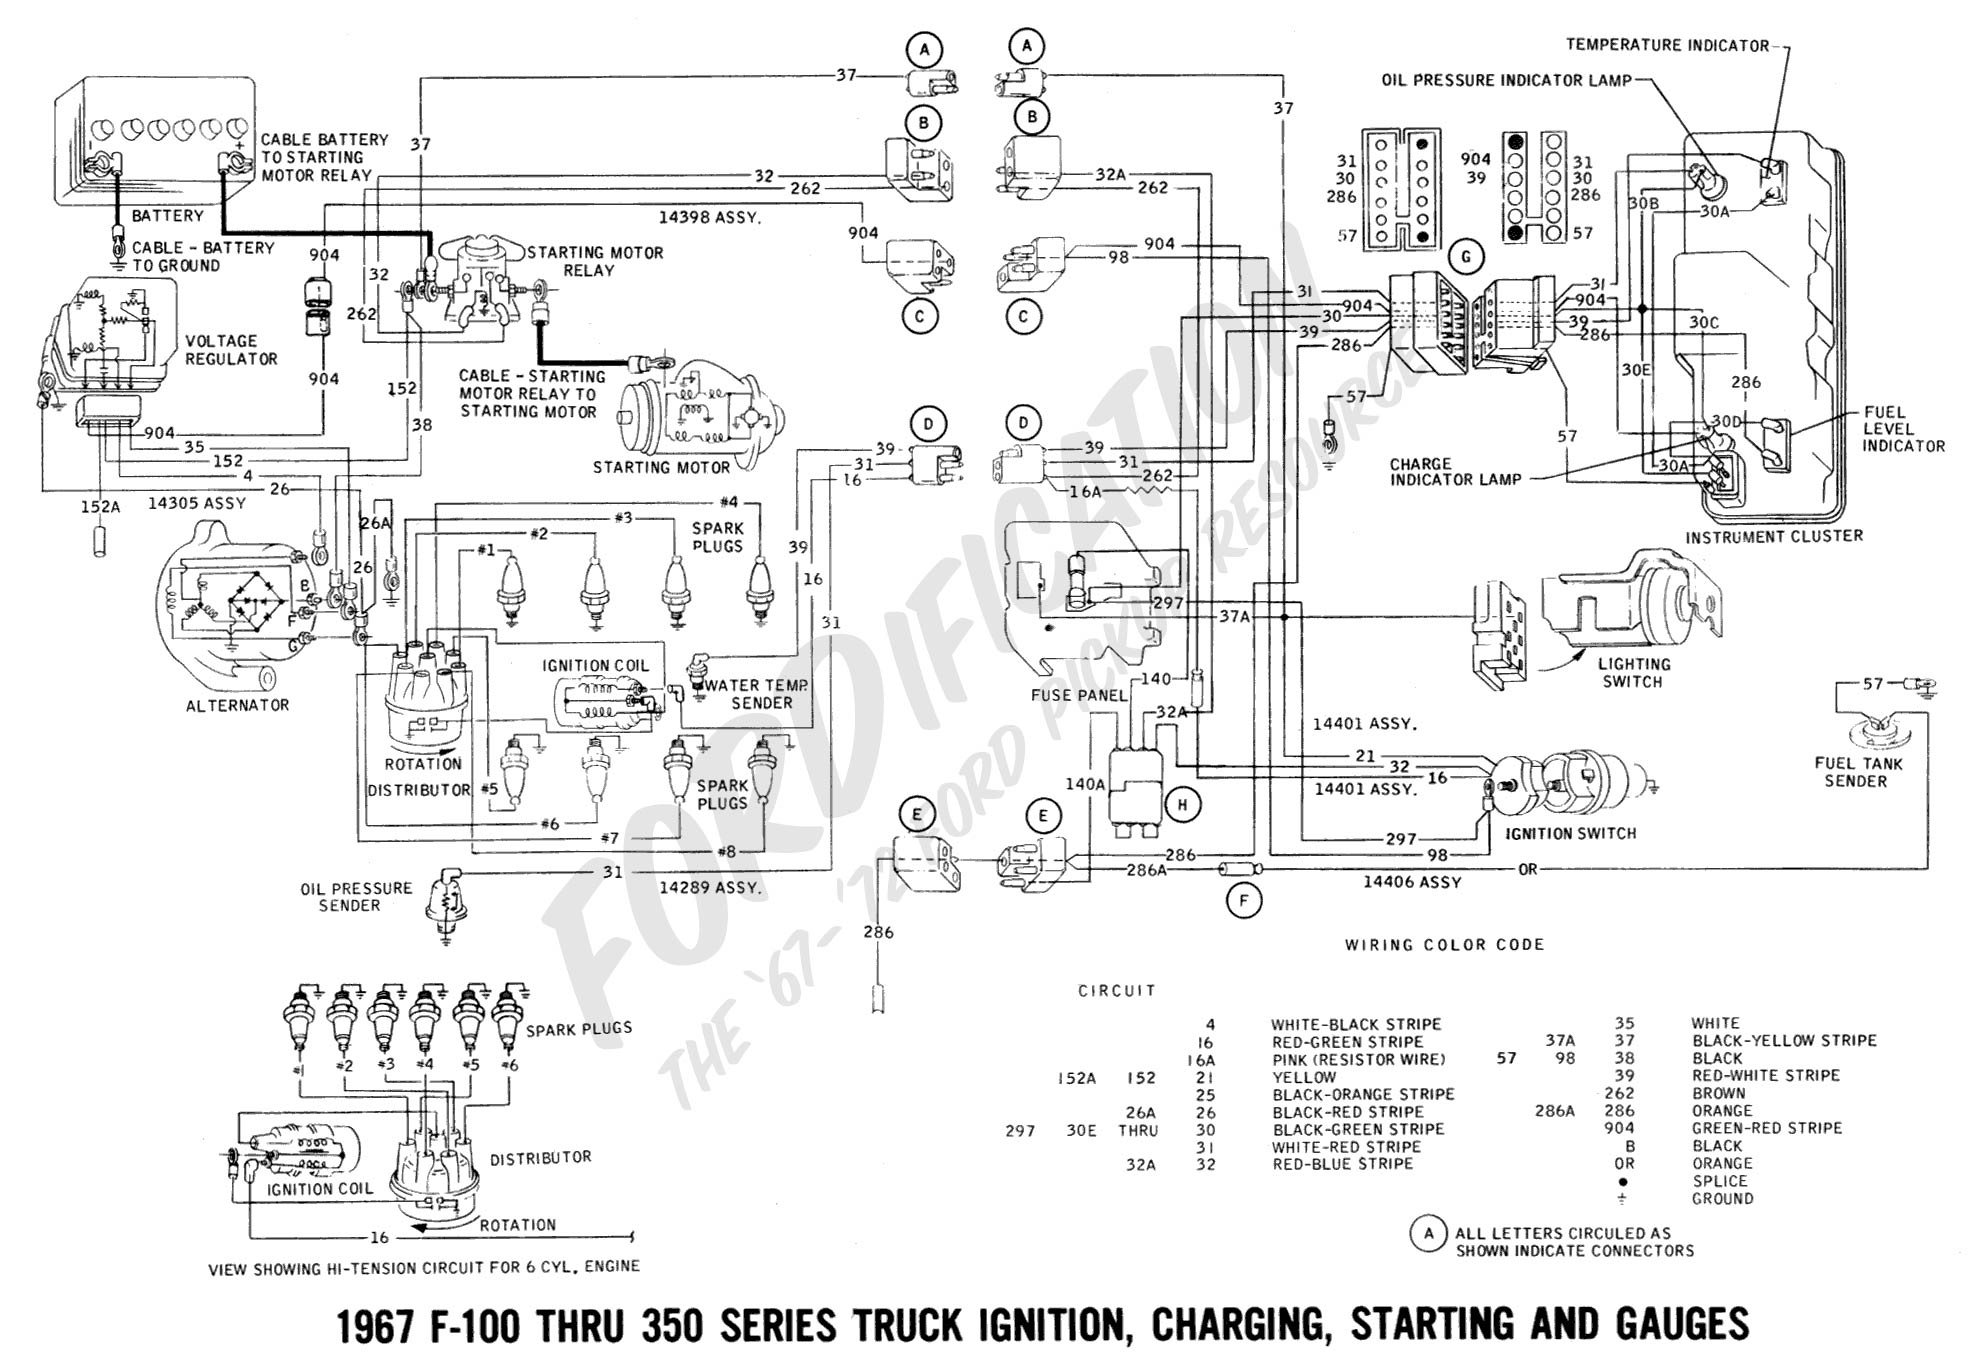 Techometer Wiring Diagram 1999 Ford Explorer - Wiring Diagrams Hubs - Ford F250 Wiring Diagram